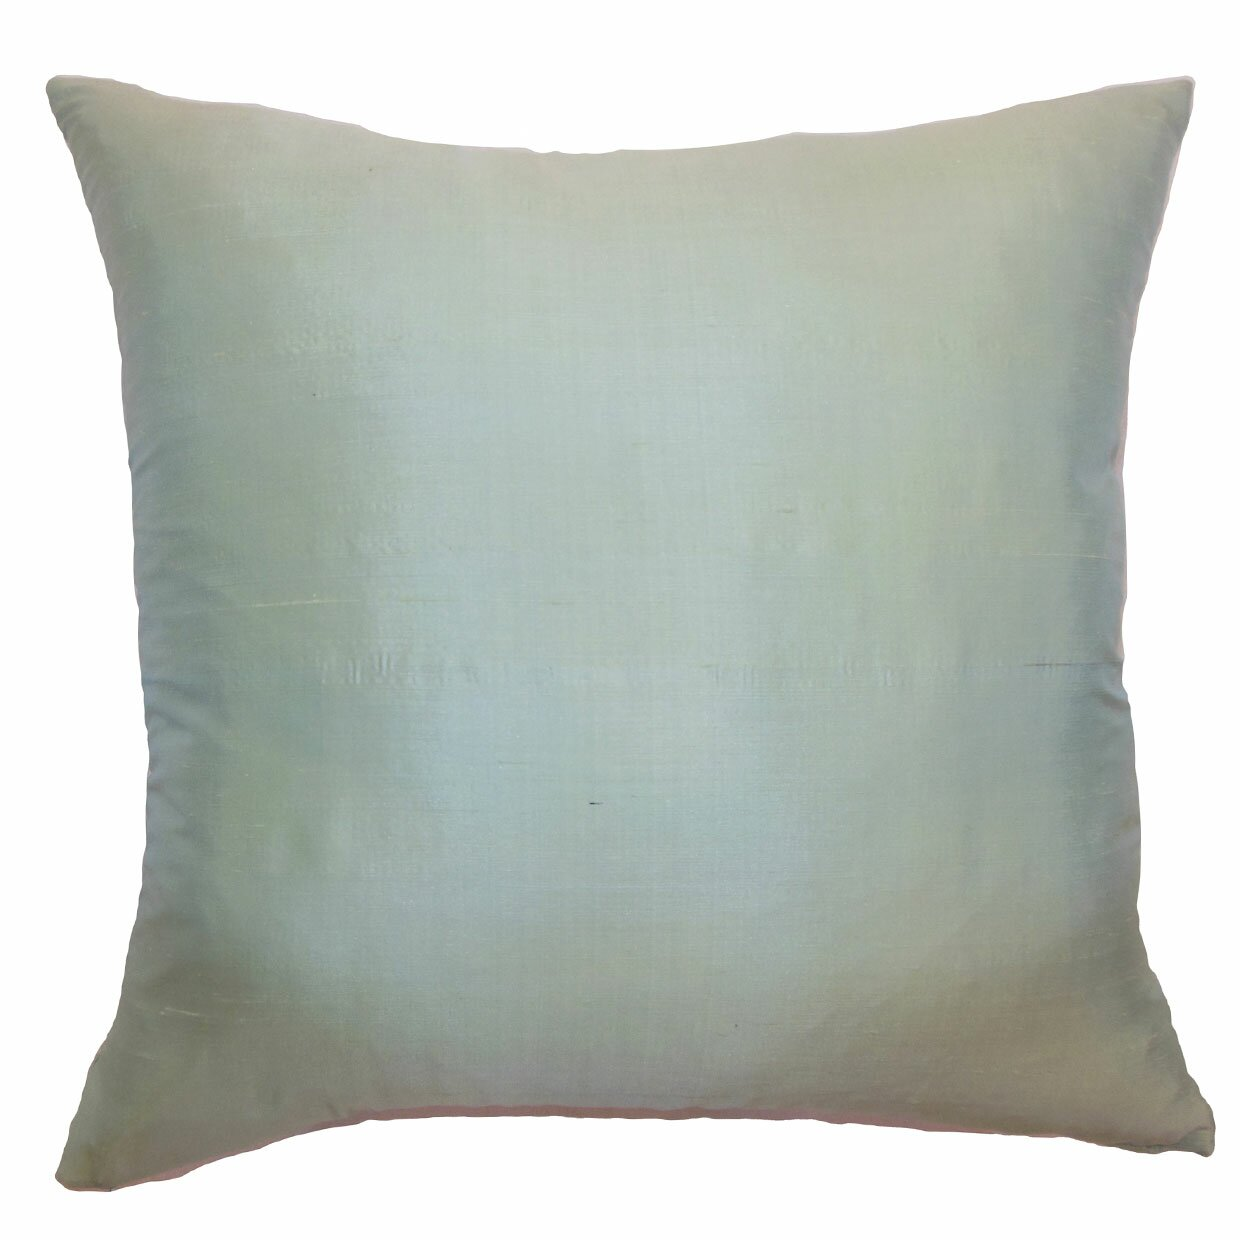 Wayfair Decorative Pillow Covers : The Pillow Collection Constance Solid Cotton Throw Pillow Cover & Reviews Wayfair